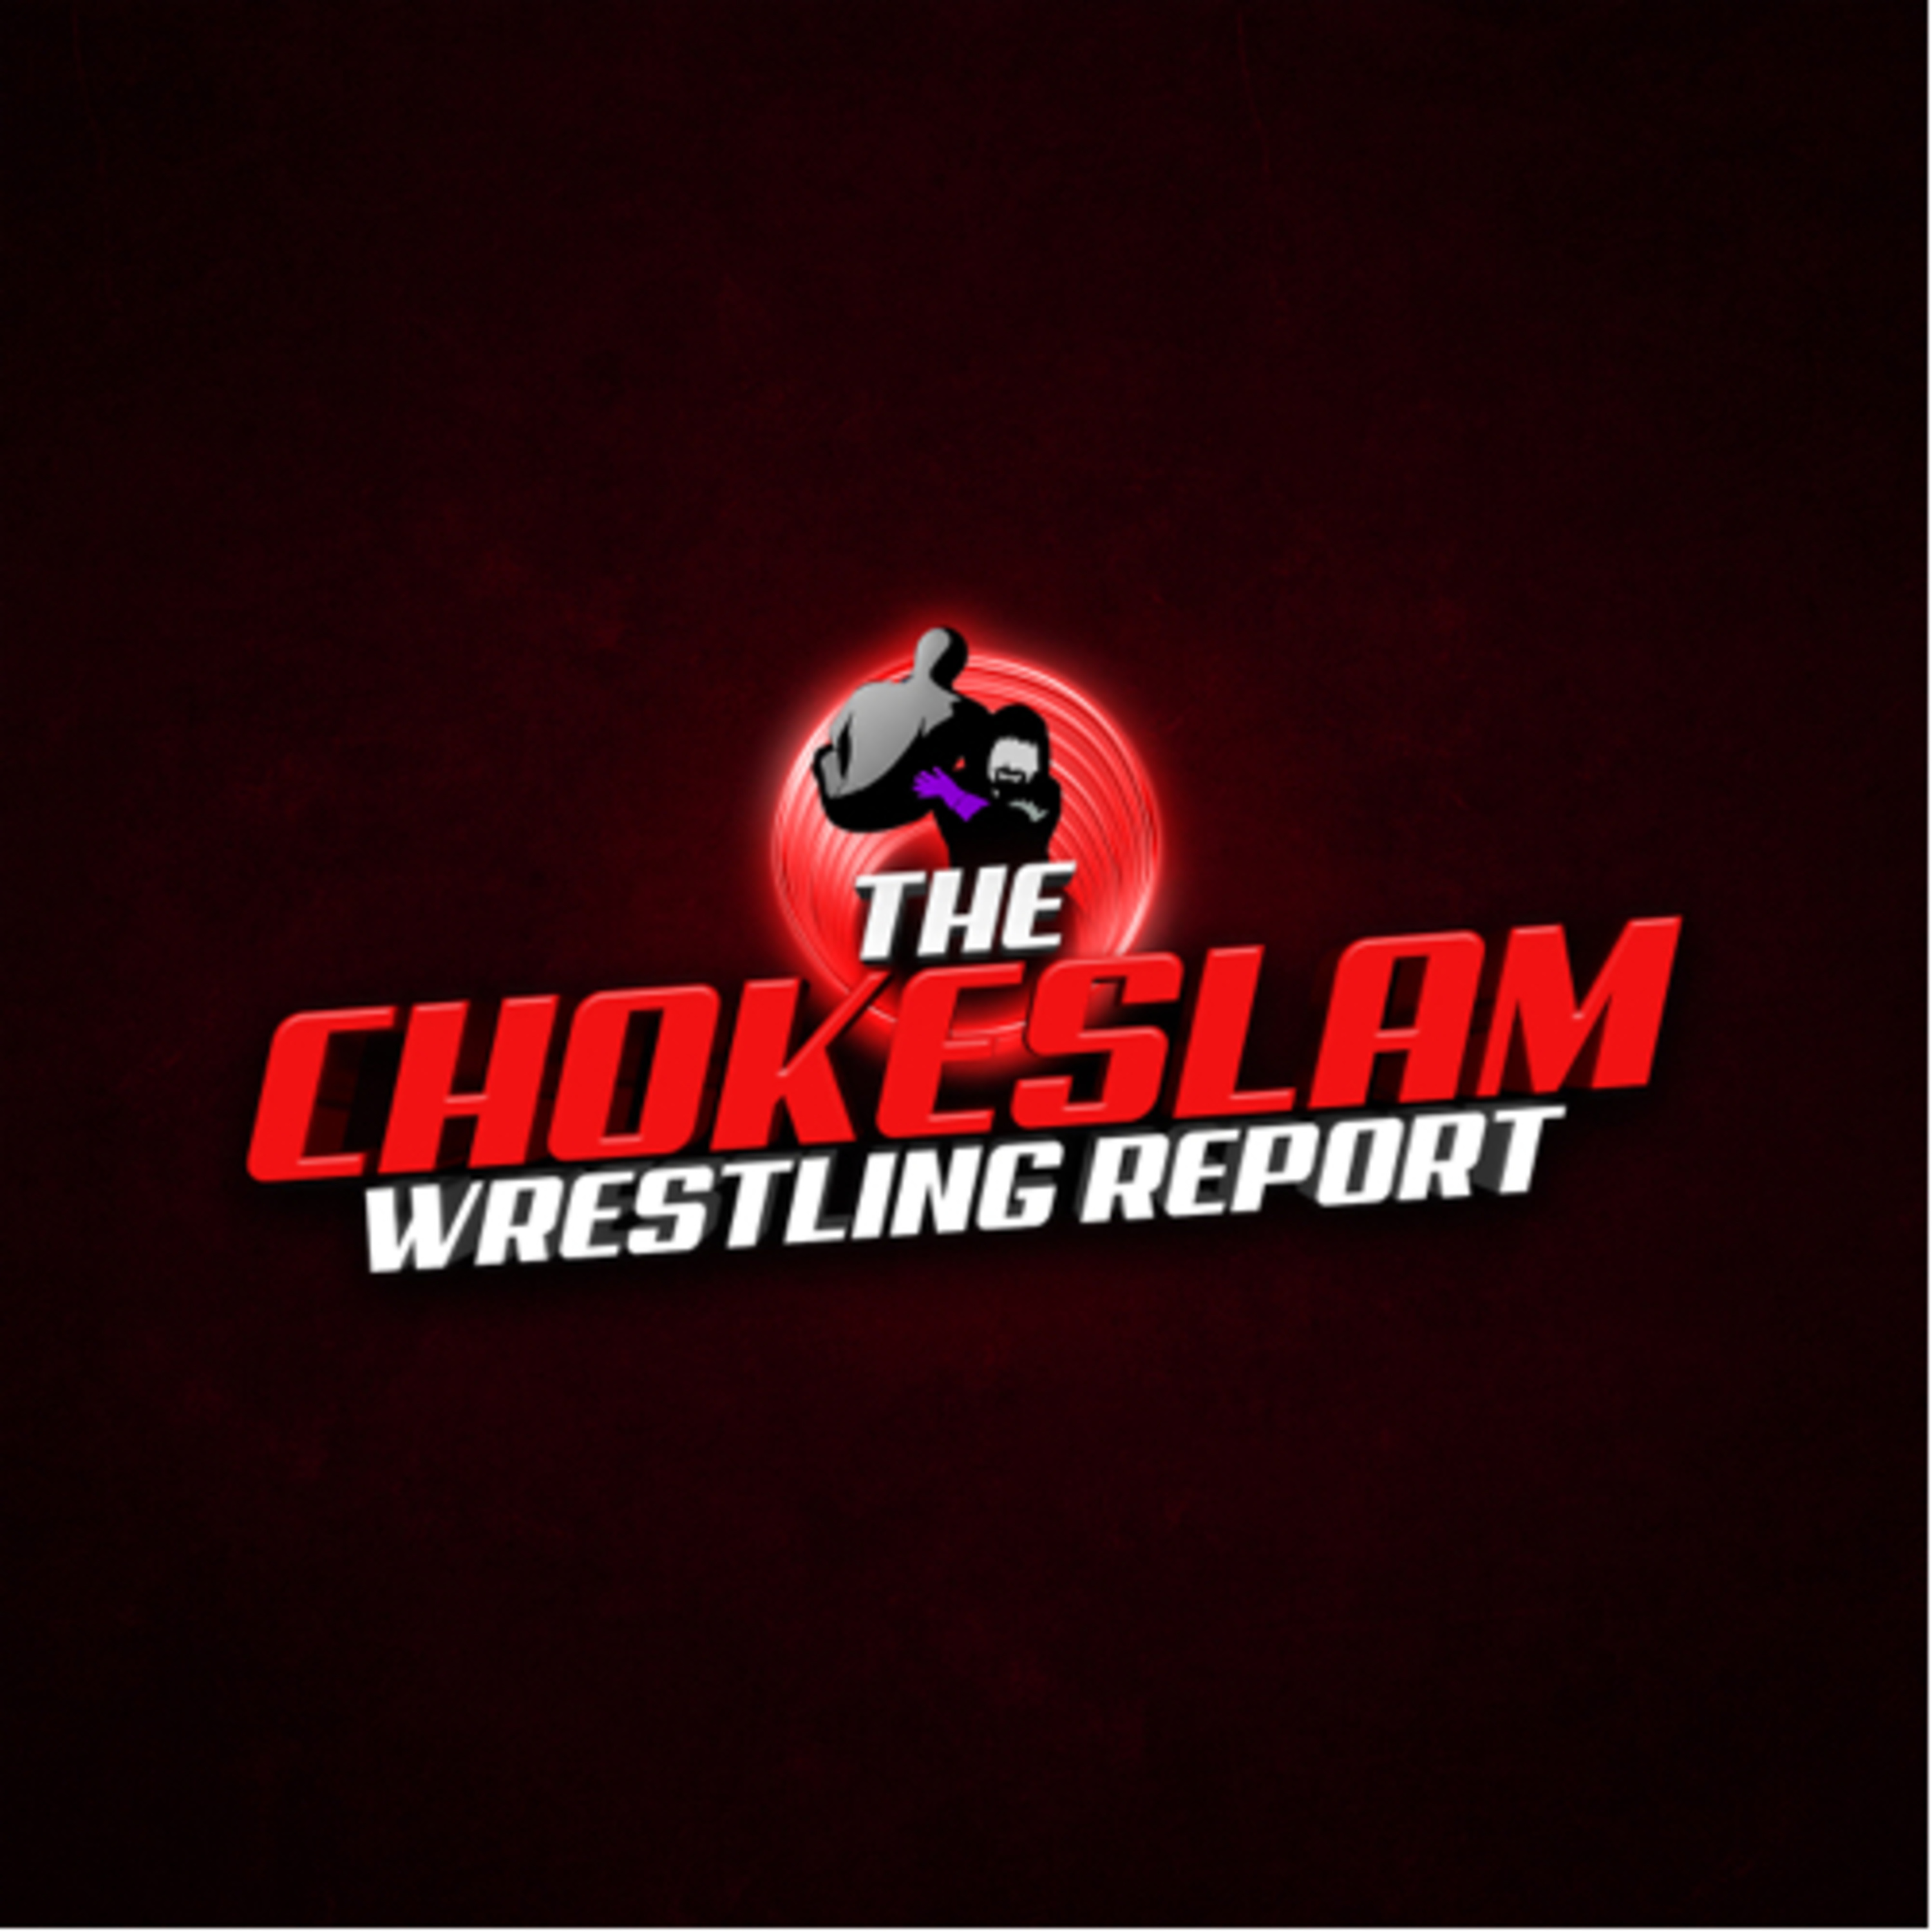 The Chokeslam Wrestling Report